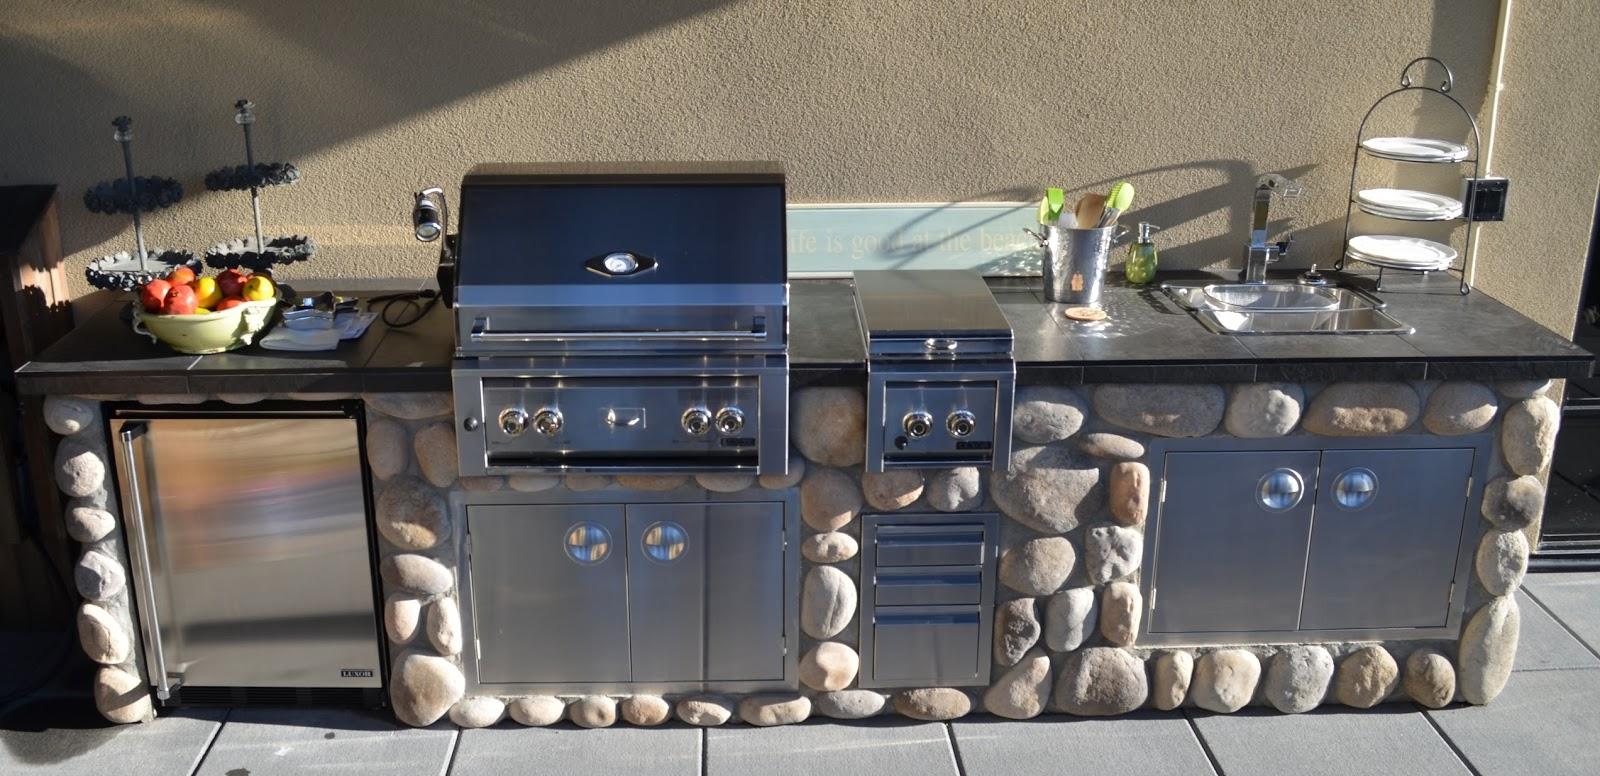 concrete outdoor kitchen diy here are the final pictures of recent outdoor kitchen located on penthouse rooftop patio in kelowna overlooking okanagan lake mode concrete outdoor kitchen contractors mode concrete kelowna bc